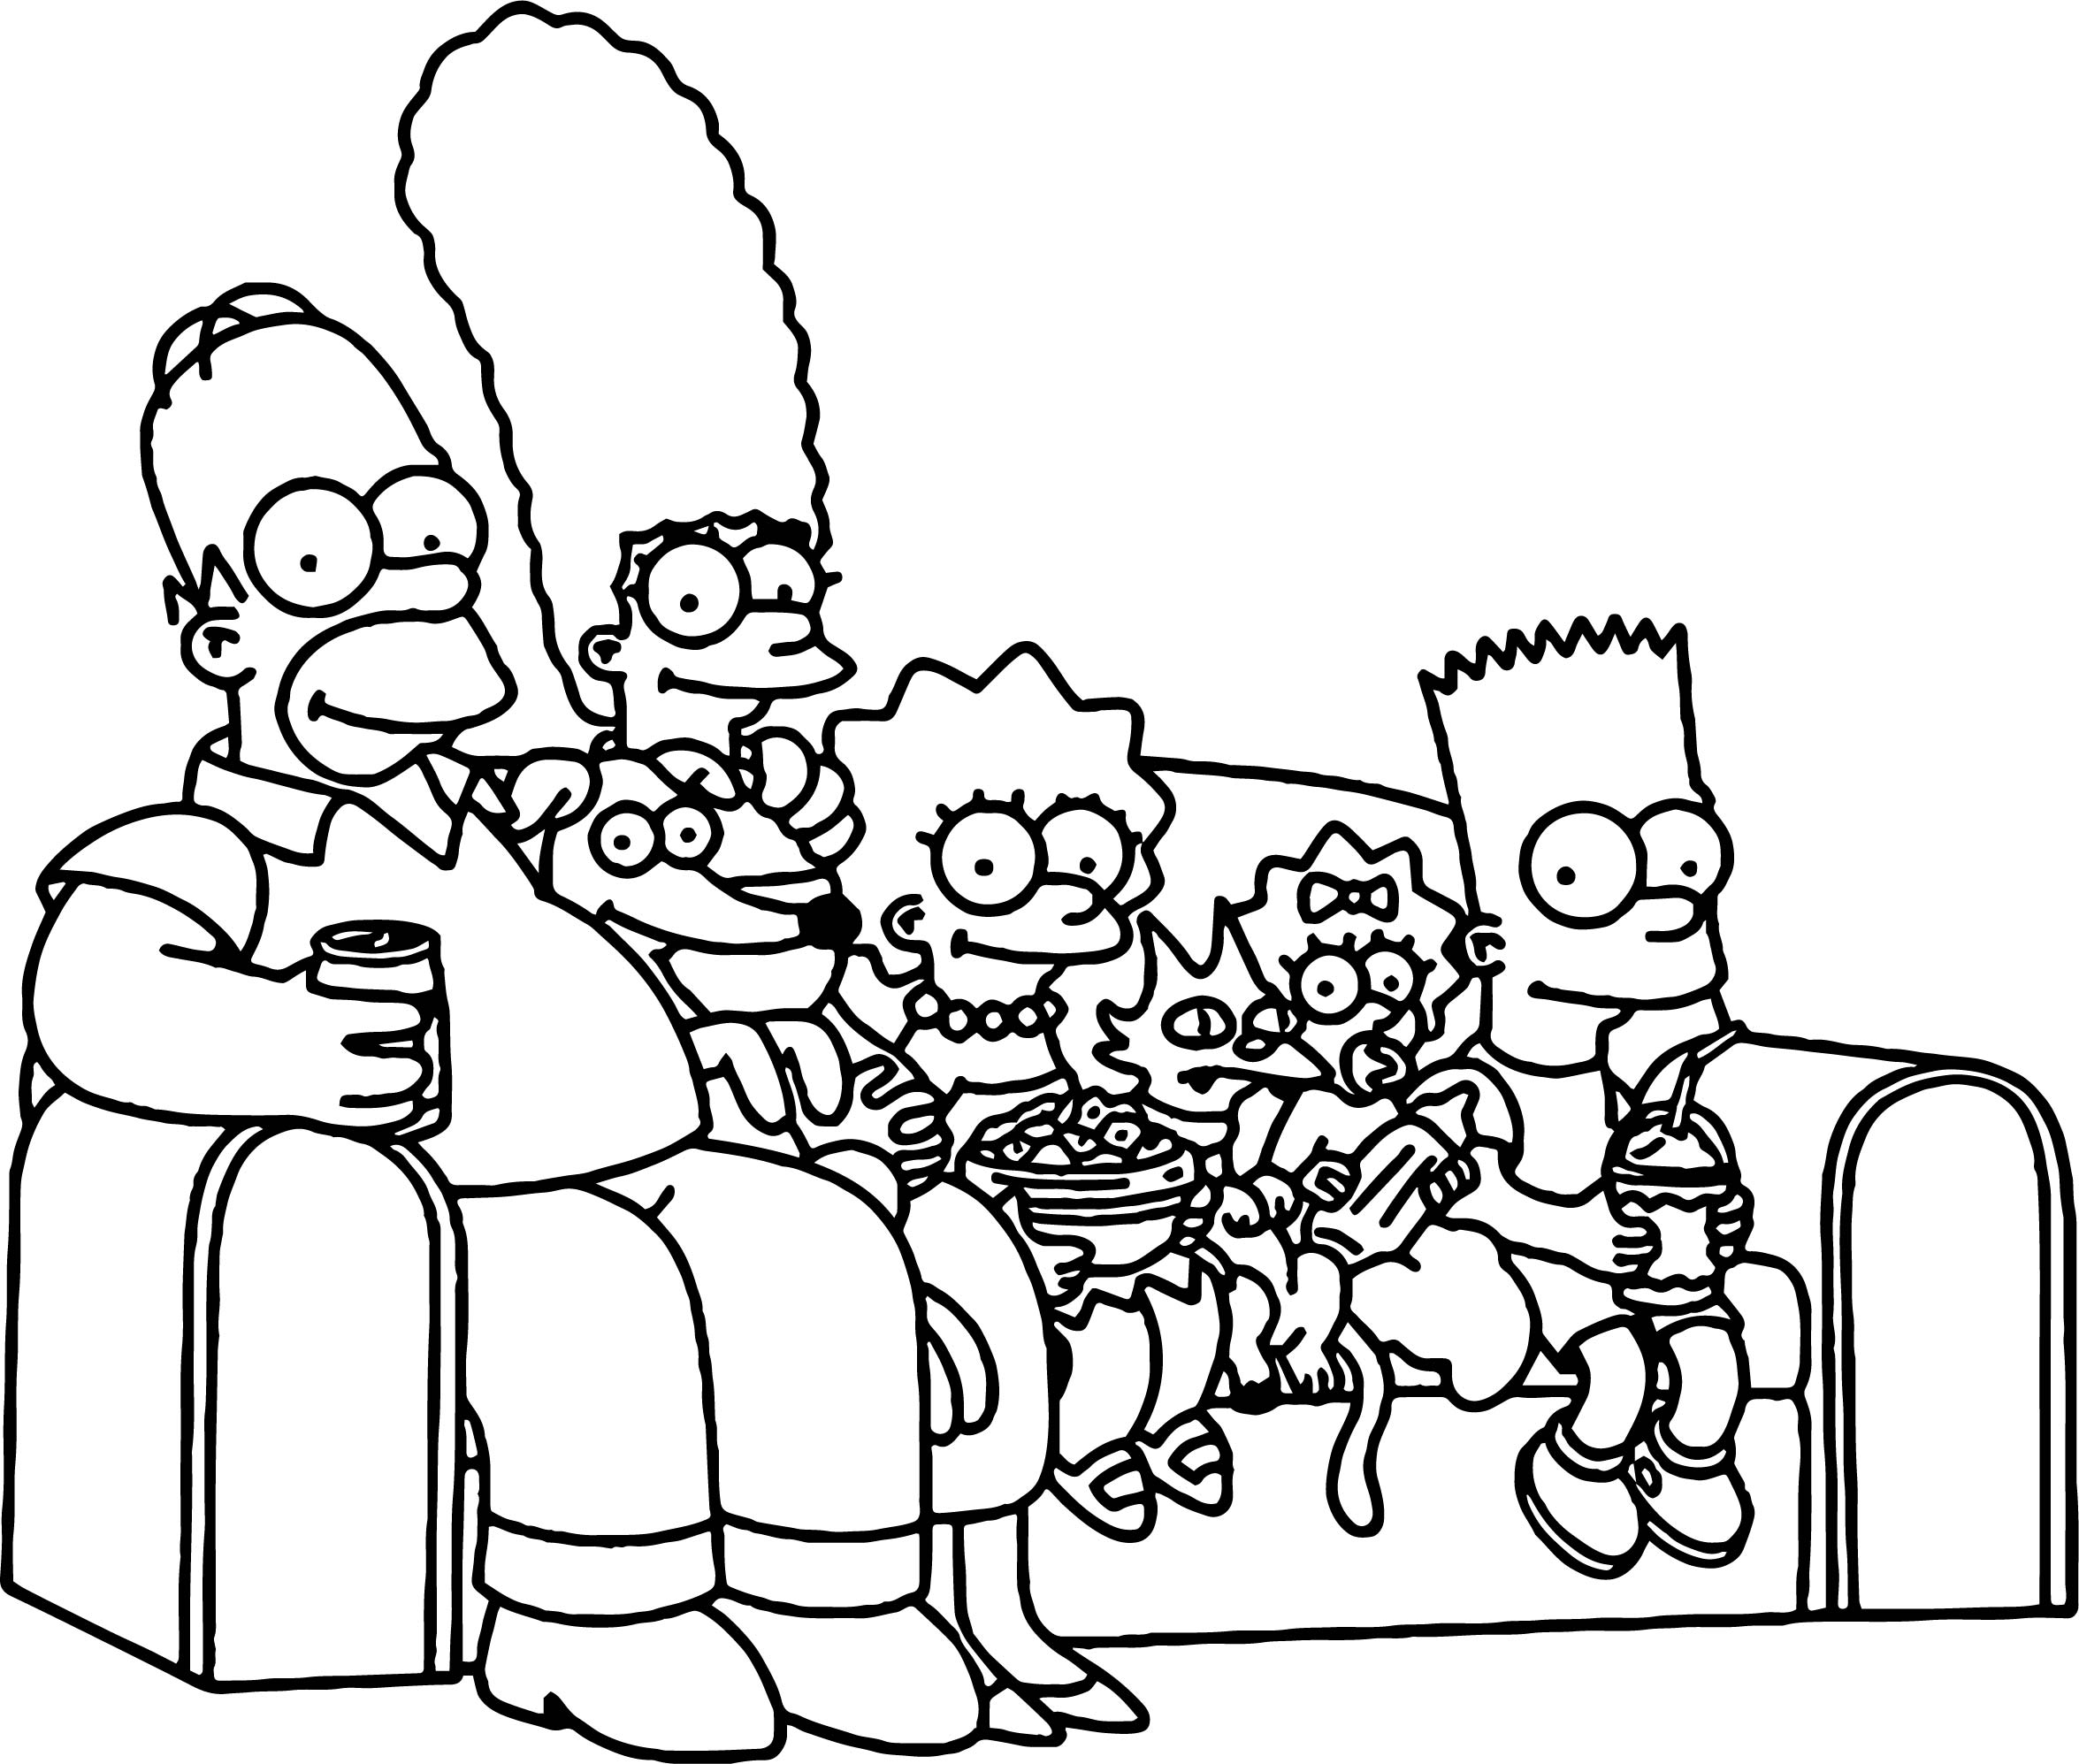 2351x1995 Simpsons Couch Coloring Page Wecoloringpage Brilliant Stuning